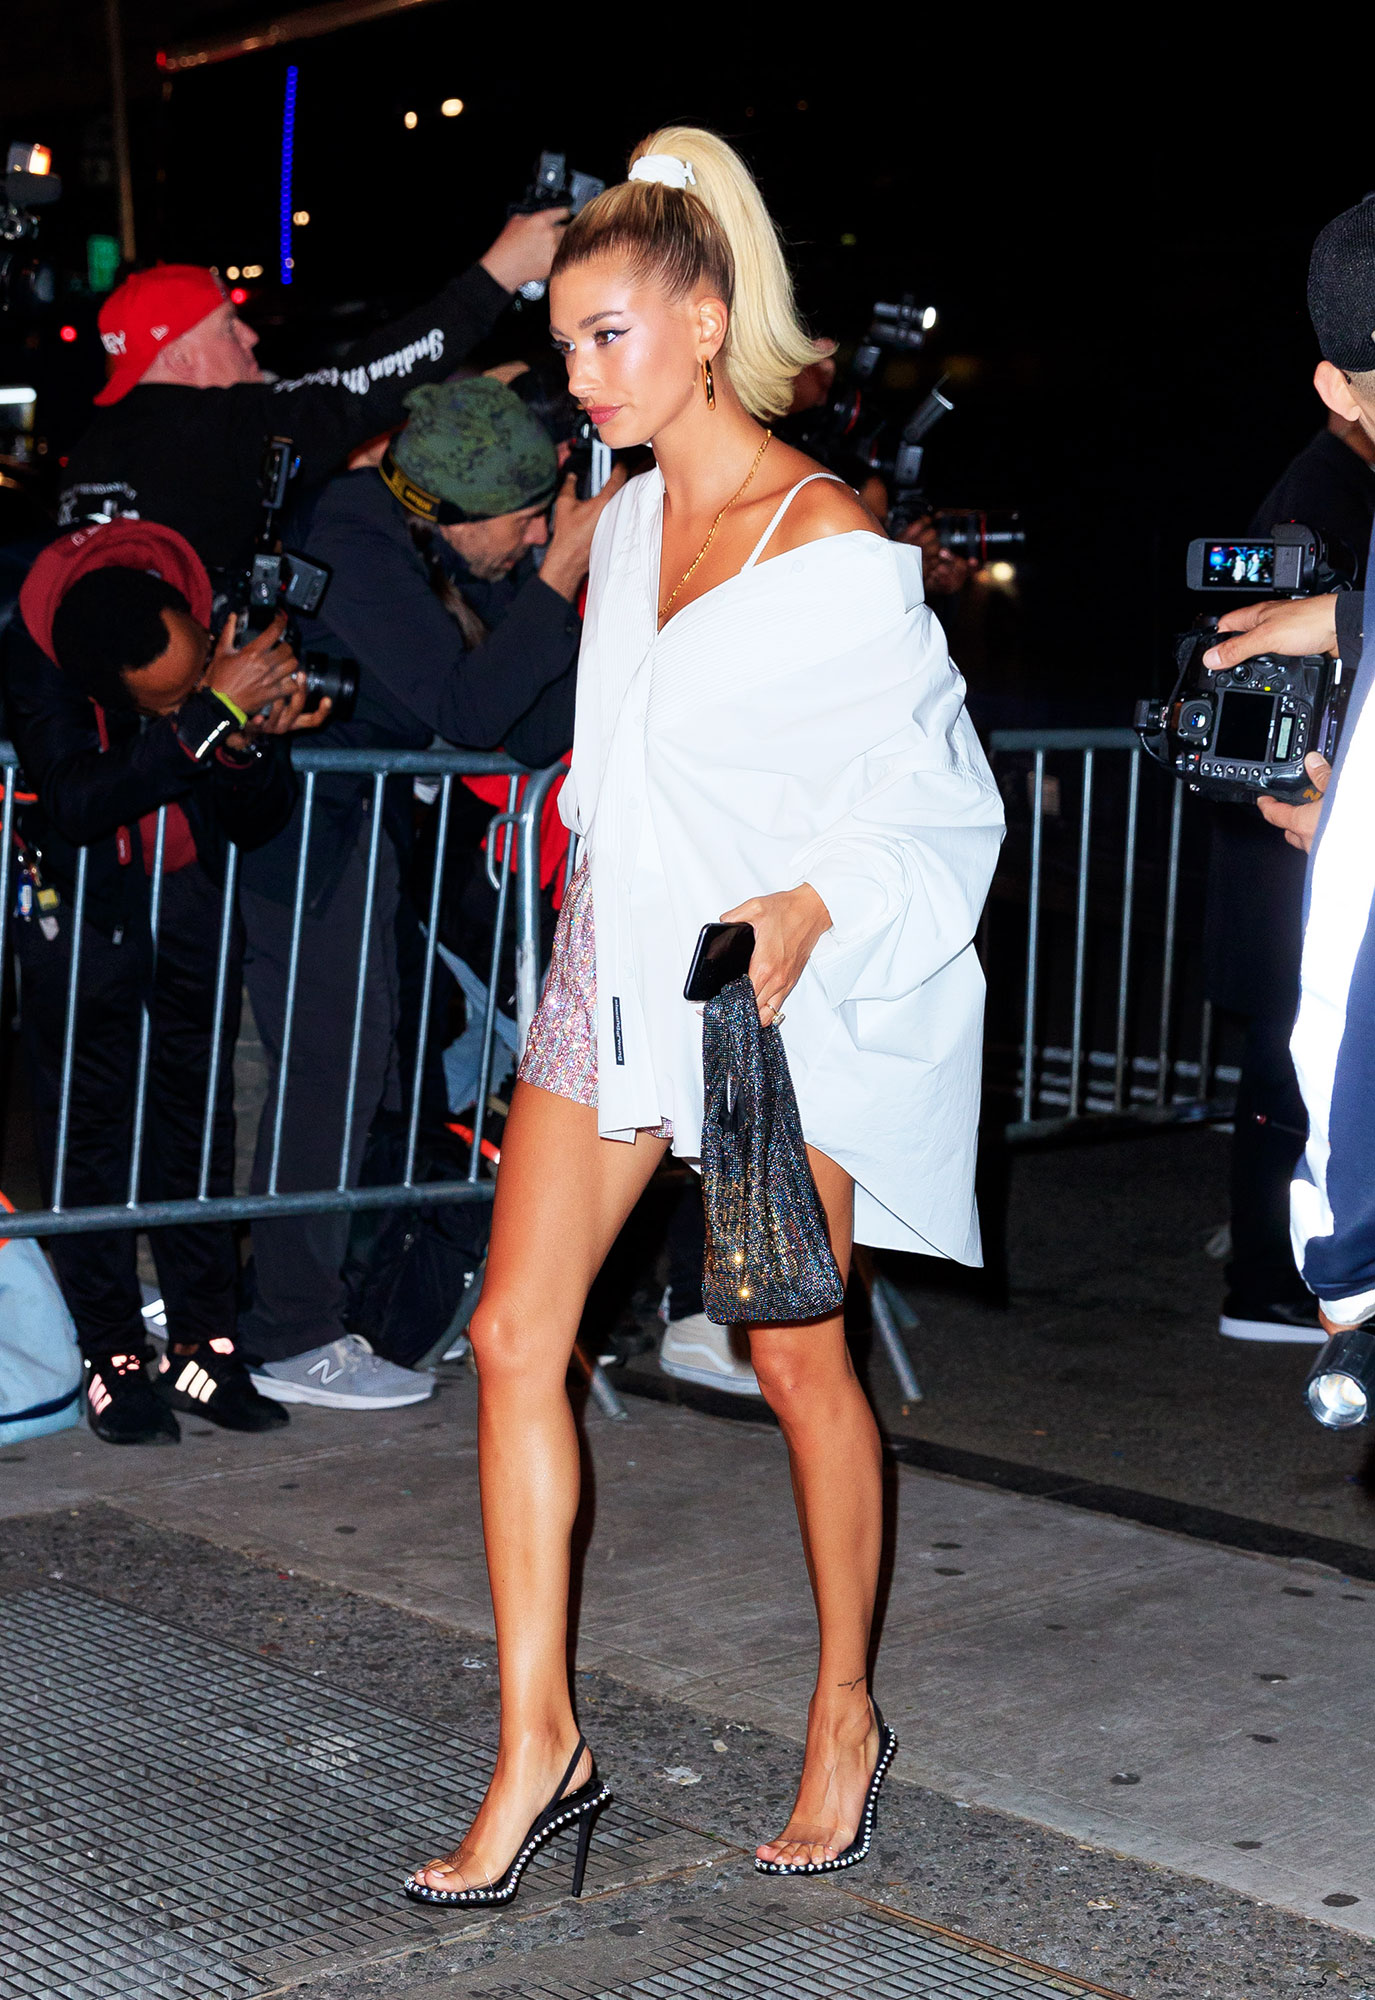 Hailey Baldwin after parties met gala 2019 - Looking just-out-of-bed chic, Justin Bieber's other half wore an oversized white button down as a dress styled with one sleeve off her shoulder